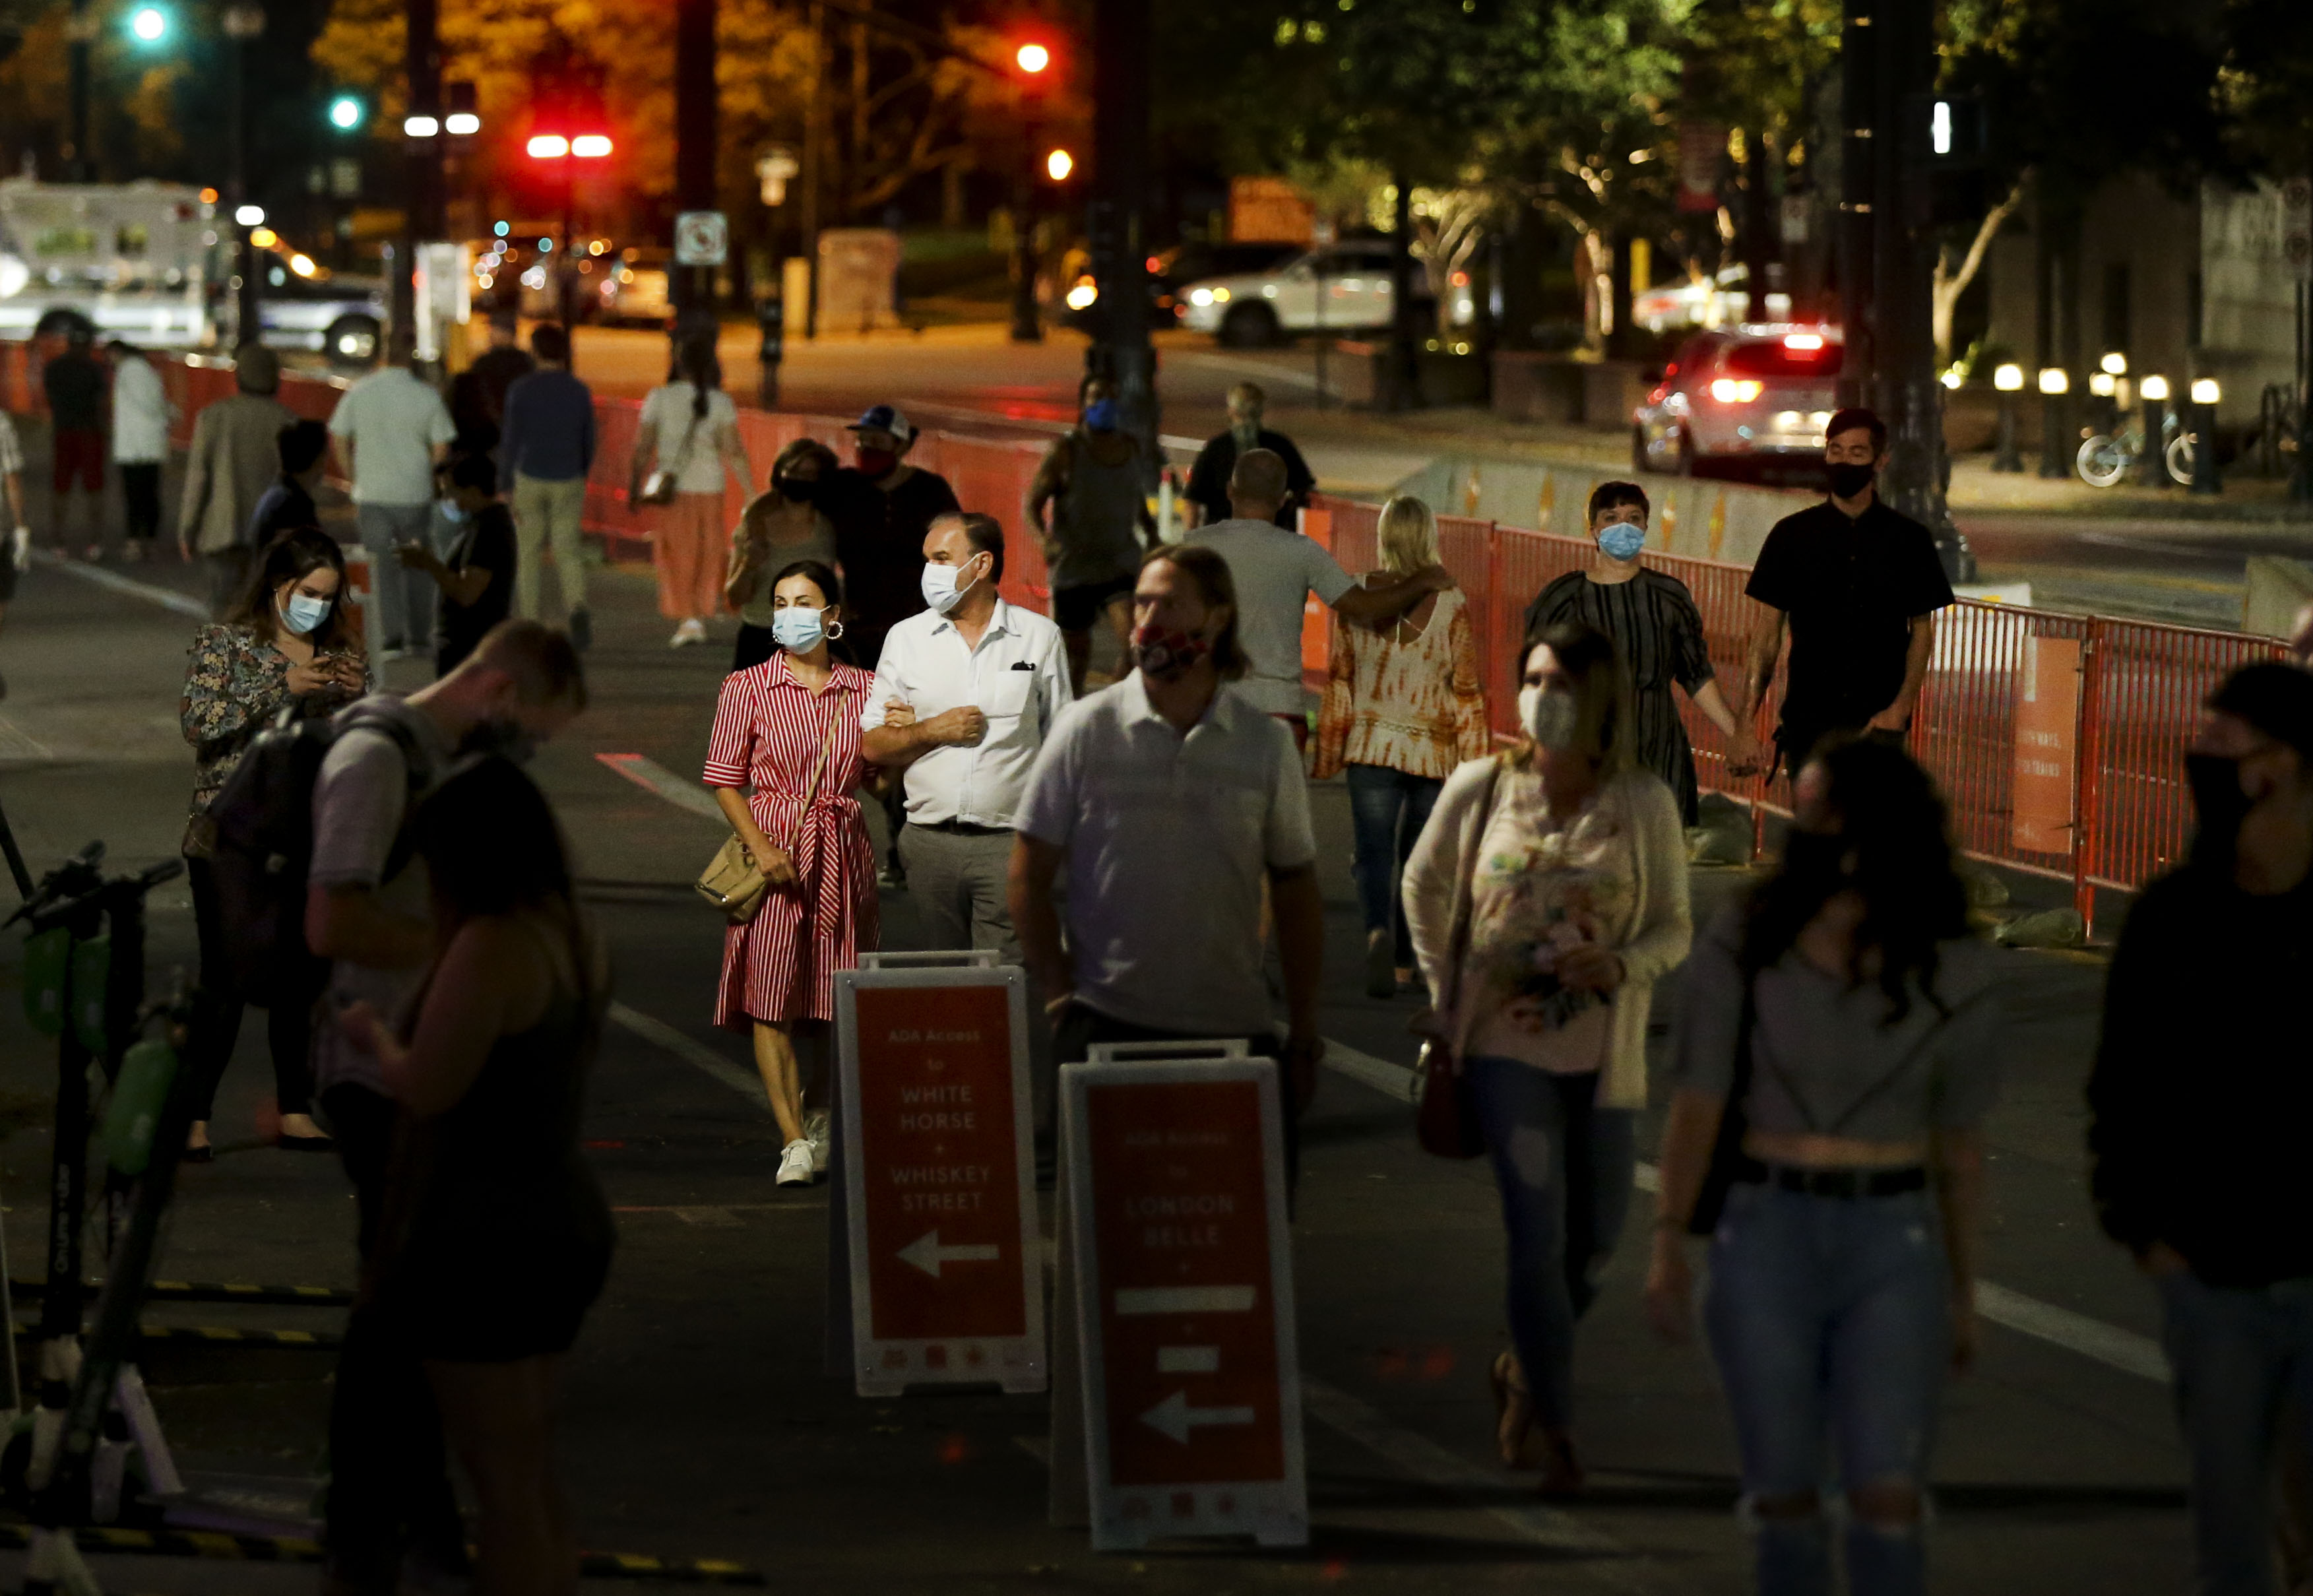 People stroll up Main Street during Downtown SLC Open Streets in Salt Lake City on Friday, Sept. 18, 2020. As part of the program, northbound traffic will be shut down from 300 South to 400 South on Main Street every Thursday, Friday and Saturday evening through Oct. 10 and restaurants will expand their presence on the sidewalks.